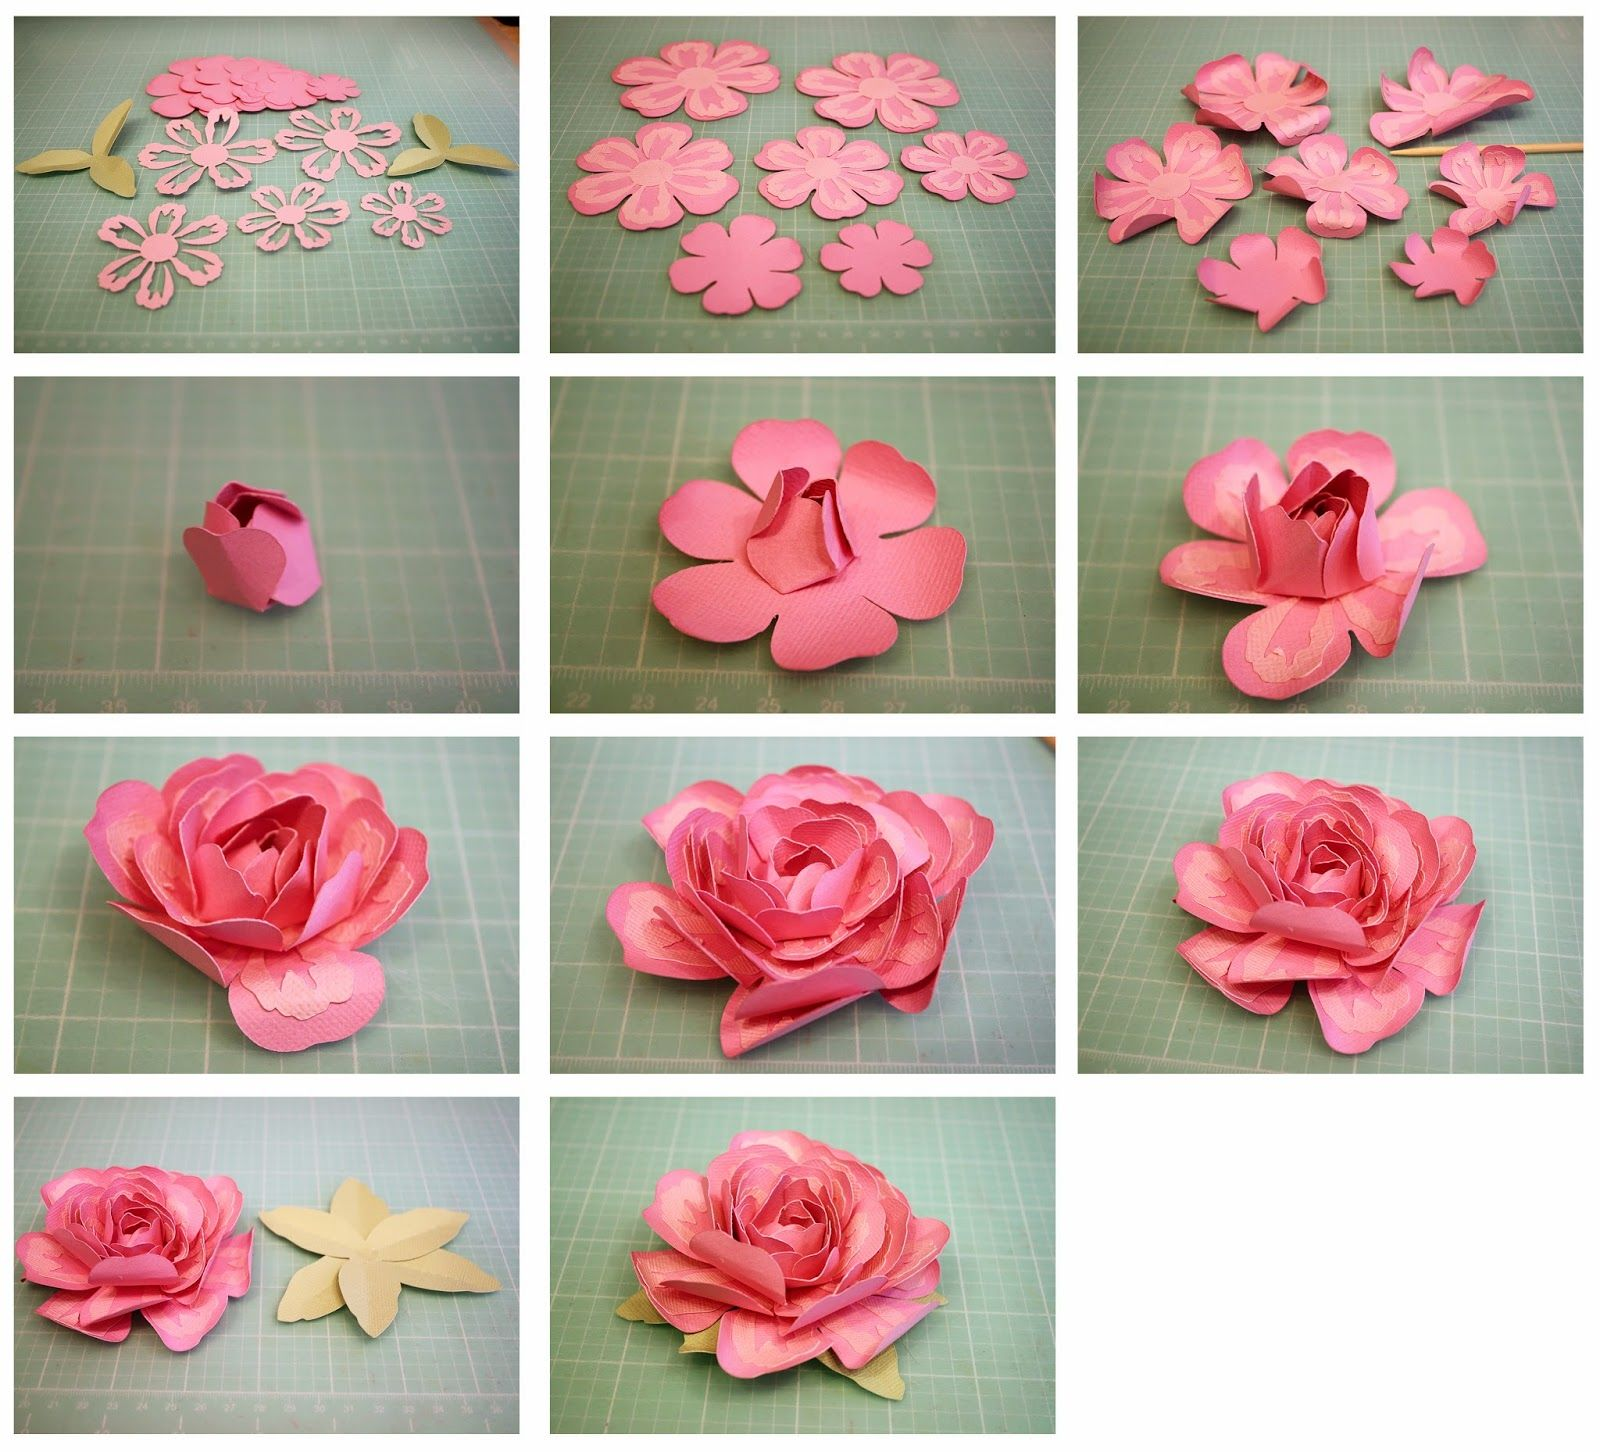 3d Layered Rose And Penstemon Paper Flowers